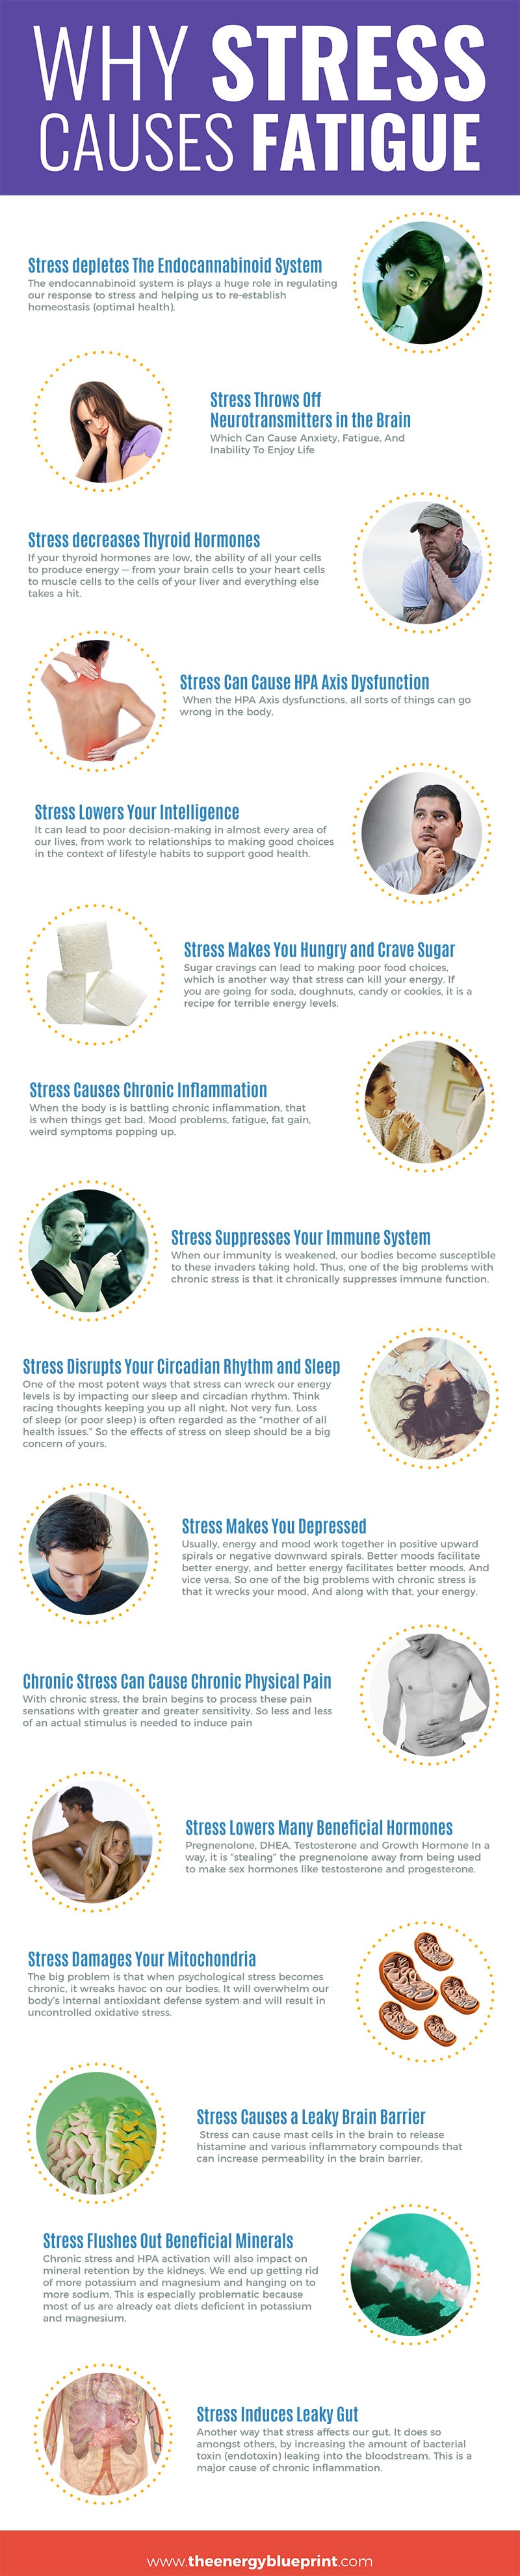 │Why Stress Causes Fatigue And How To Overcome Stress, www.theenergyblueprint.com